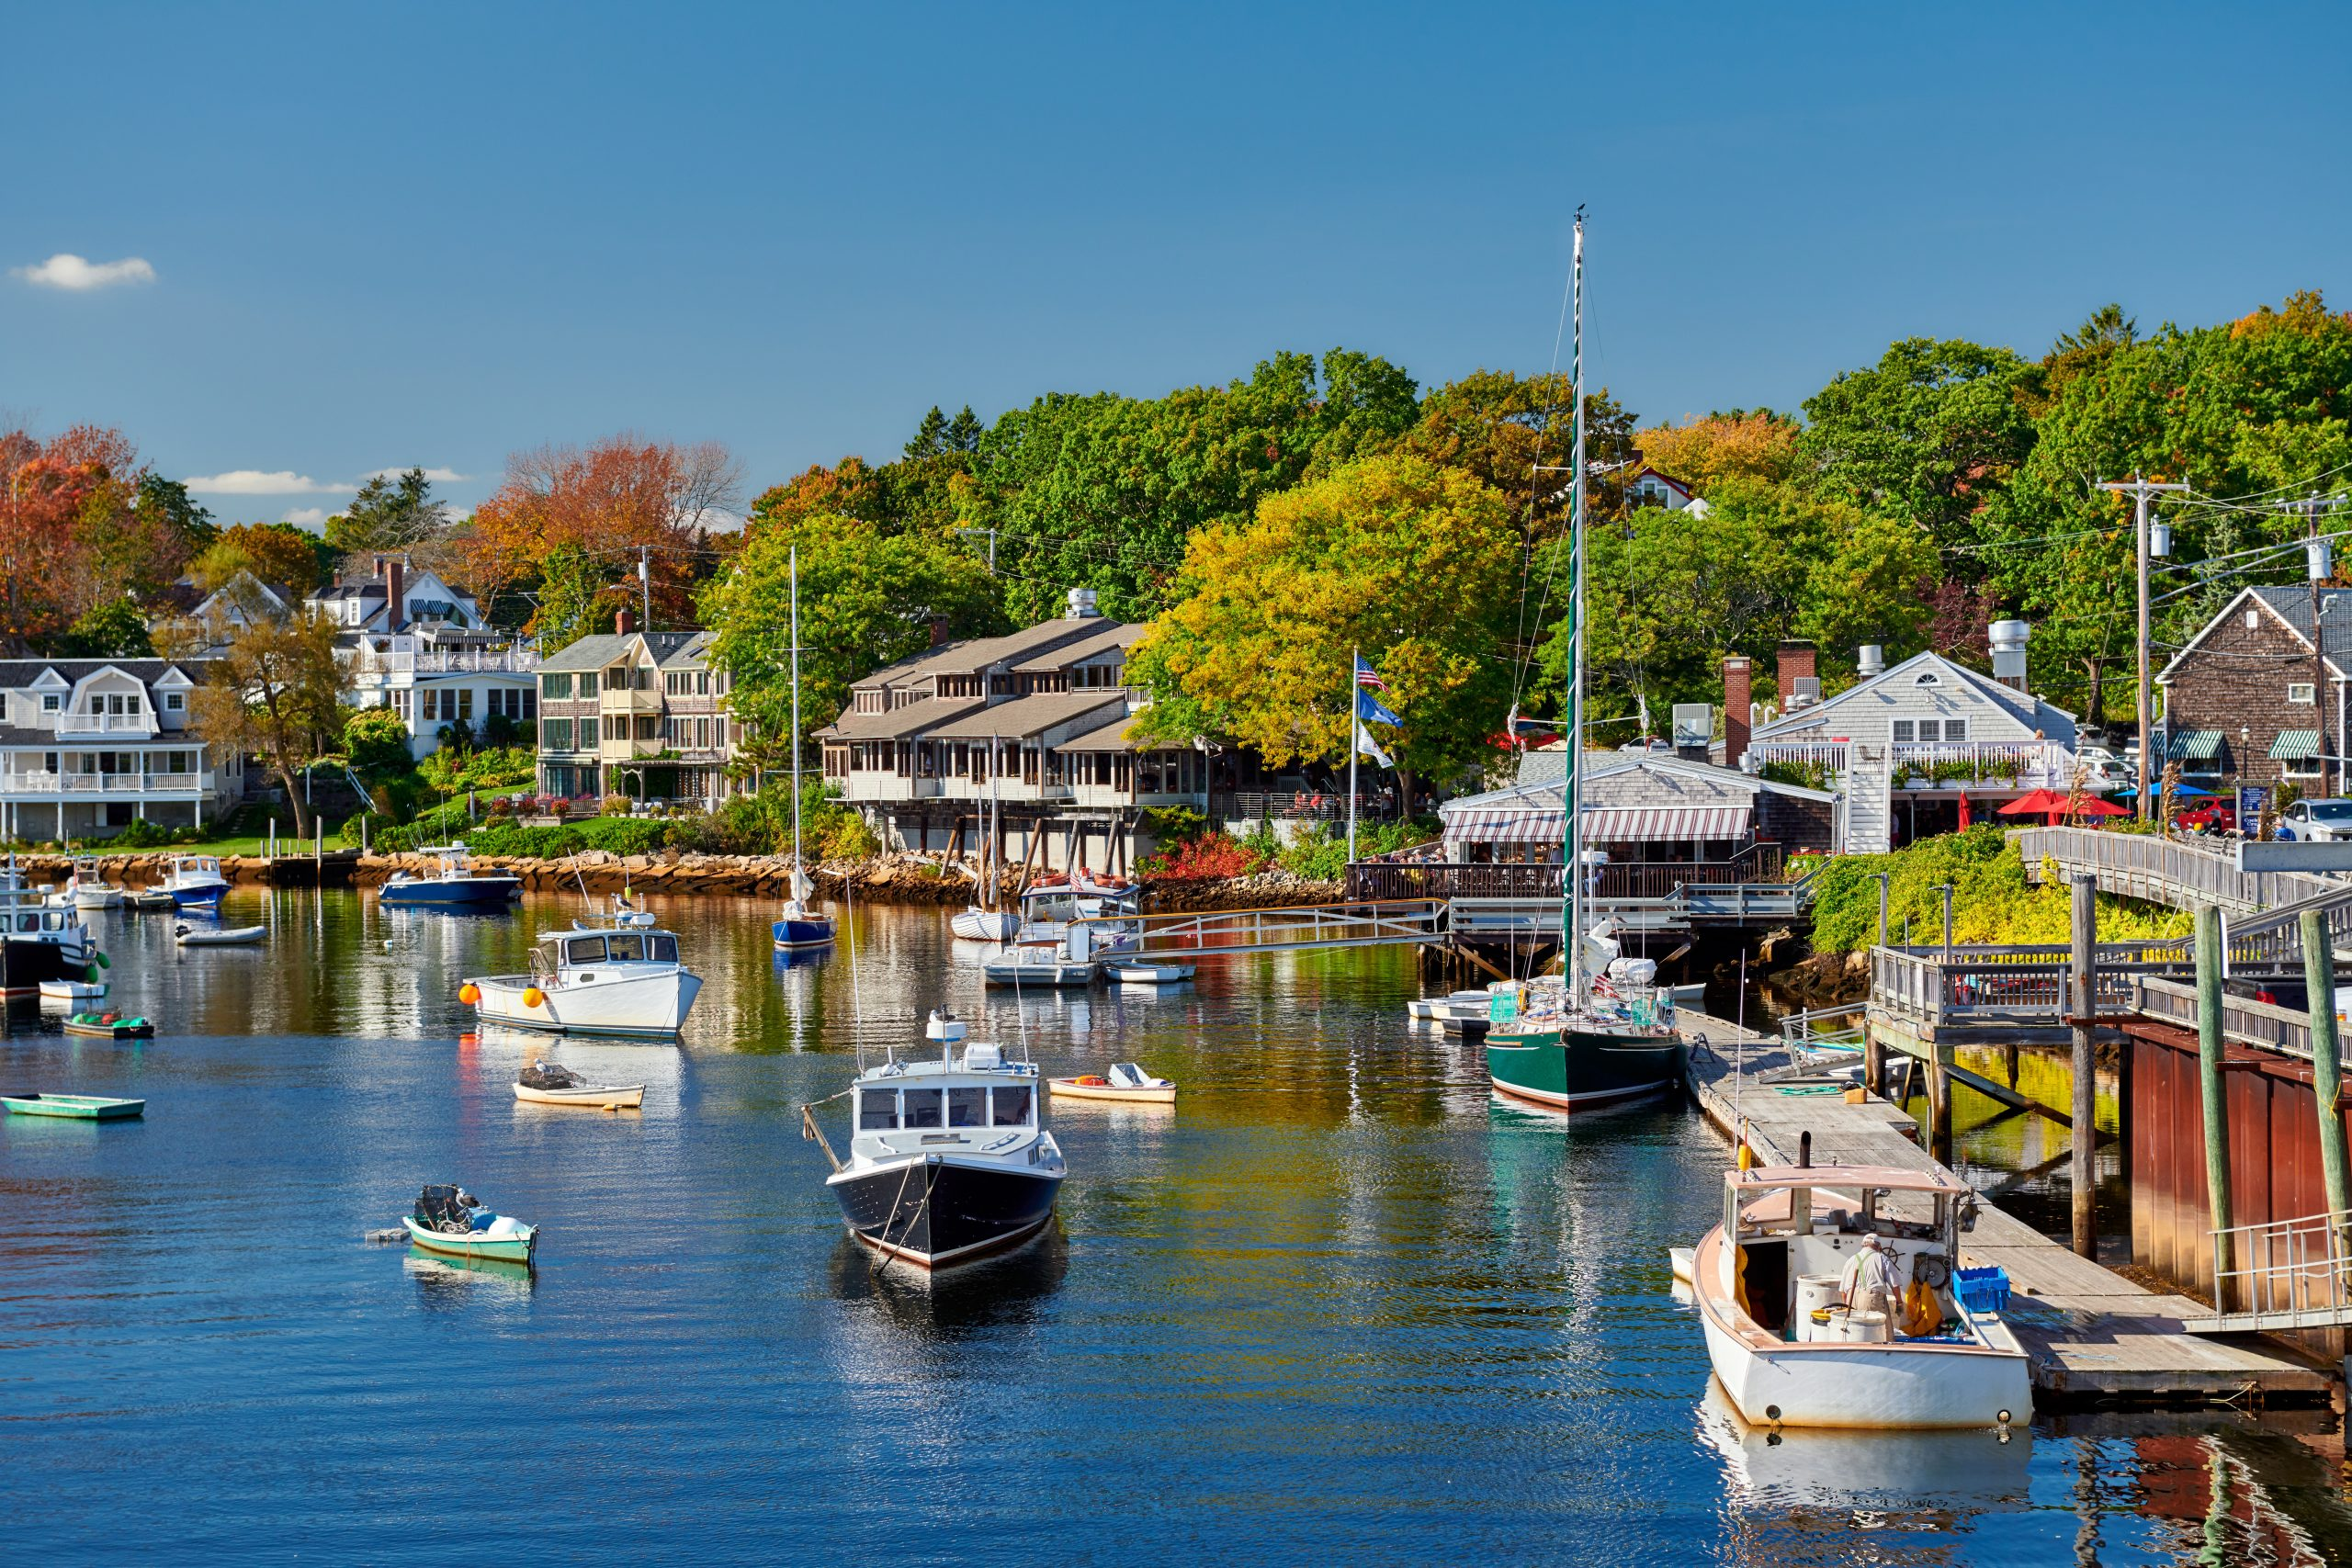 Fishing boats docked in Perkins Cove, Ogunquit, on coast of Maine south of Portland, USA